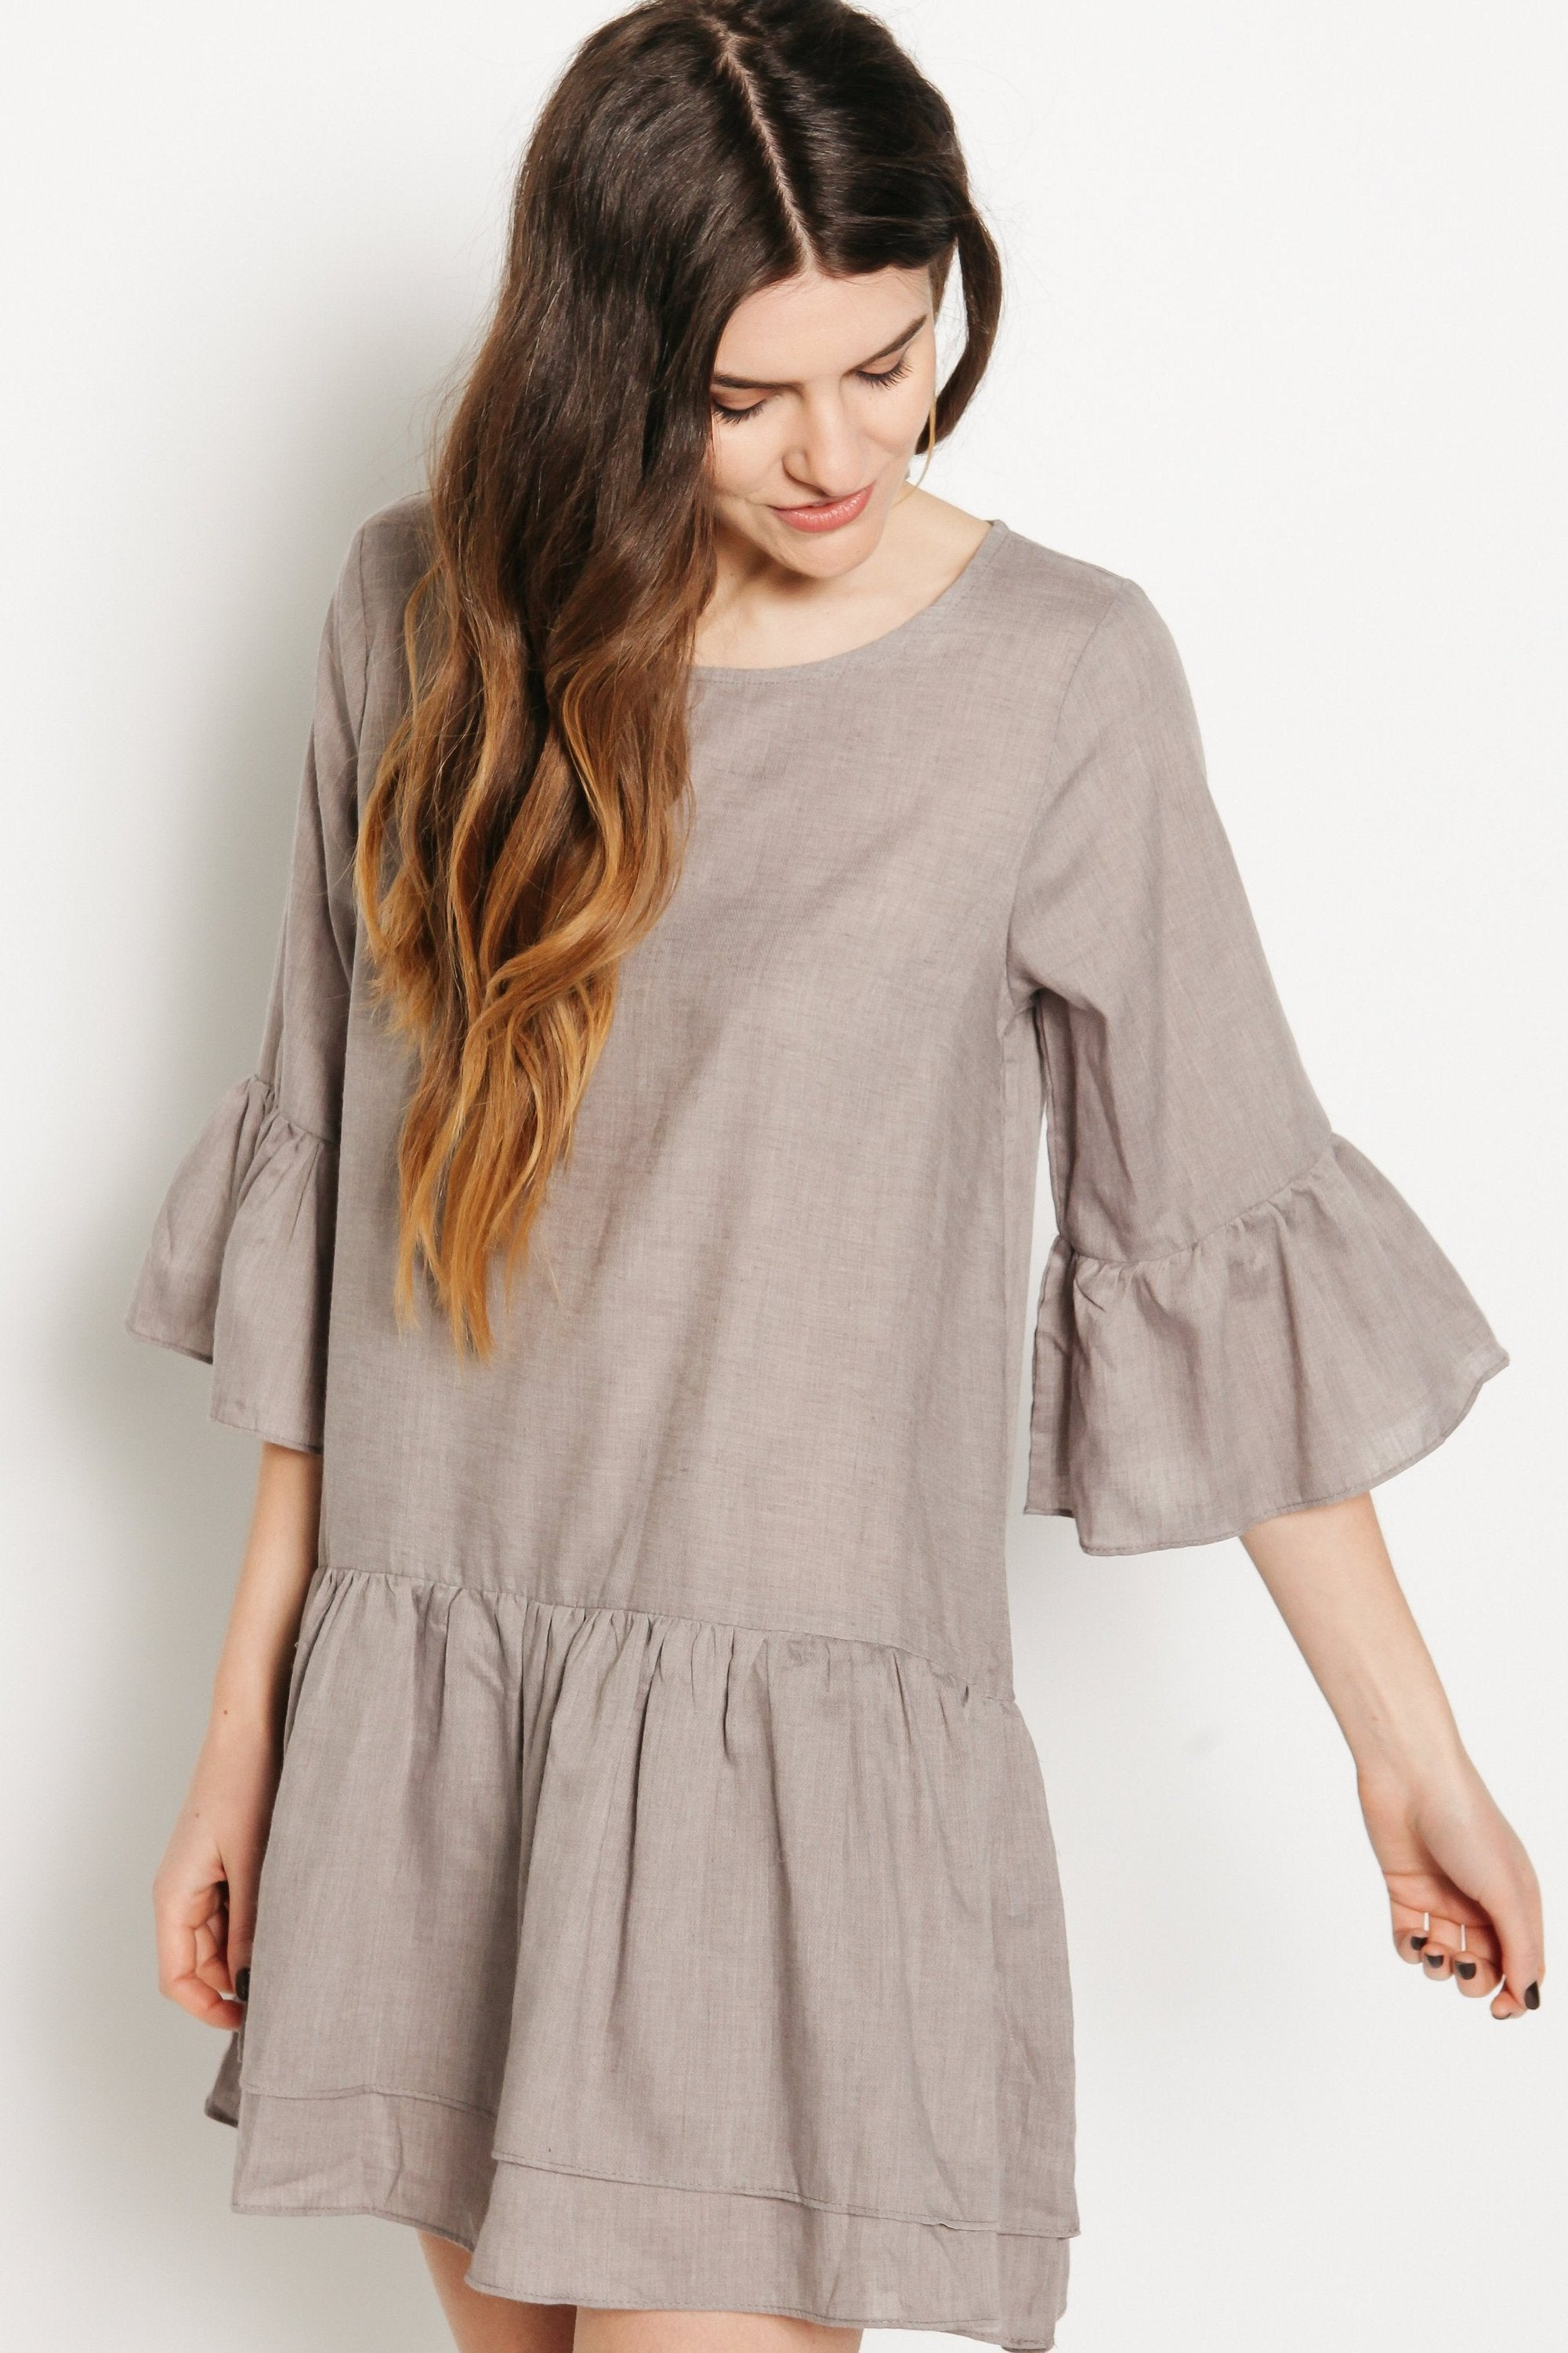 Raynie Dress - Grey